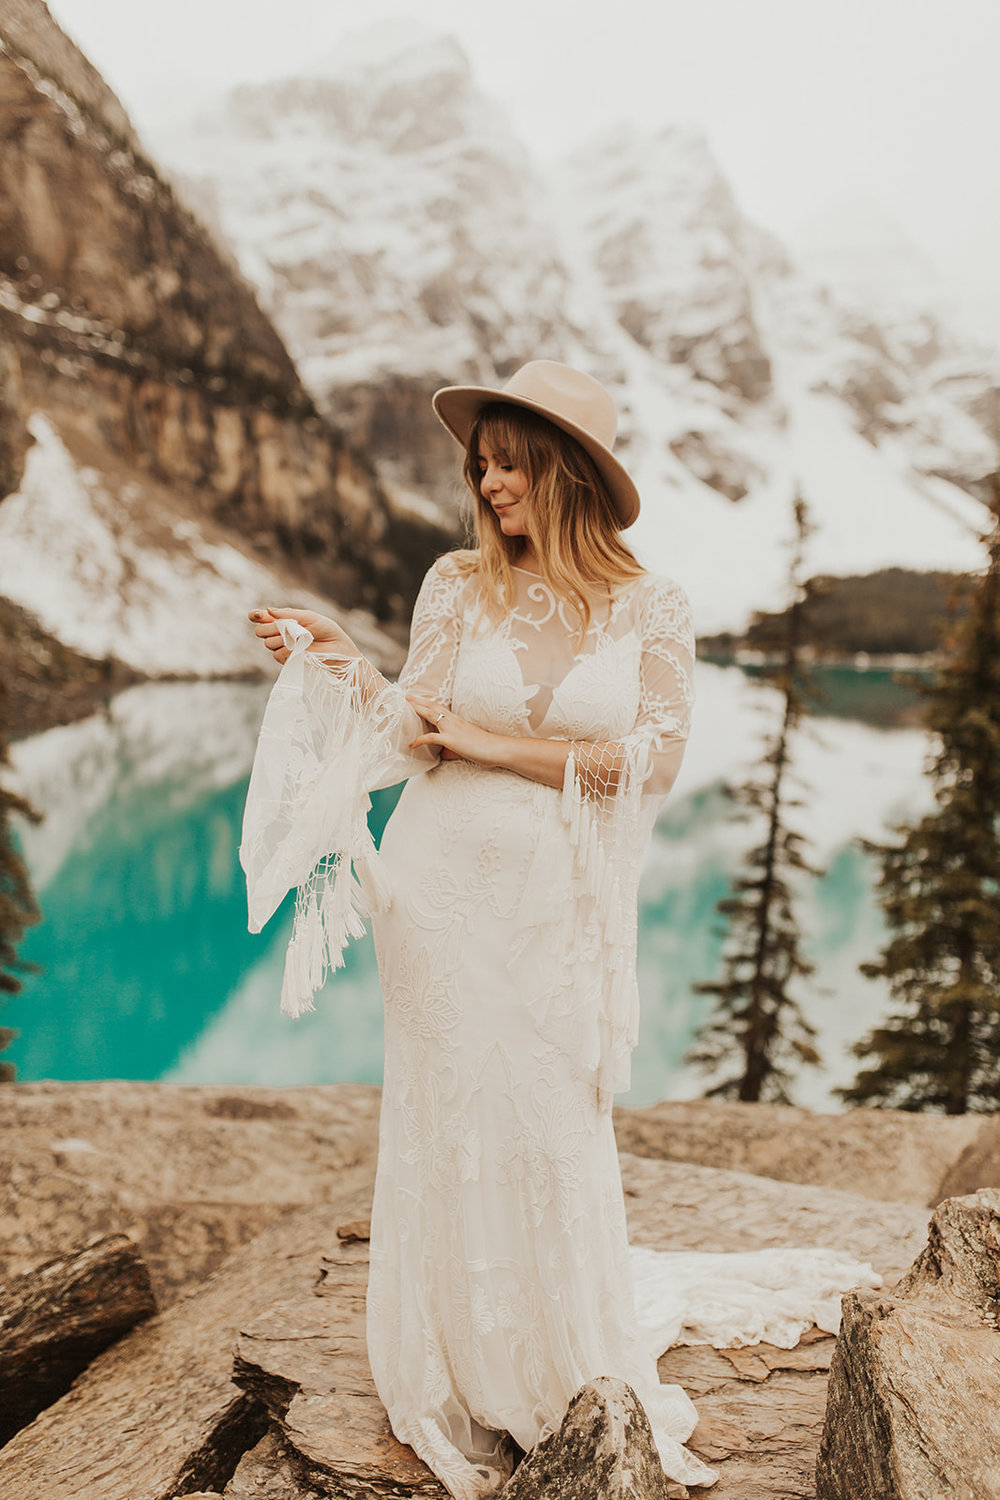 Banff Elopement l Lake Moraine Elopement l Vintage Bolo Tie l Pampas Grass Boho Boquet l Rue Design Wedding Dress l Banff Wedding Photographer l Destination Wedding Photographer l Katy Rose Photo_-97.jpg